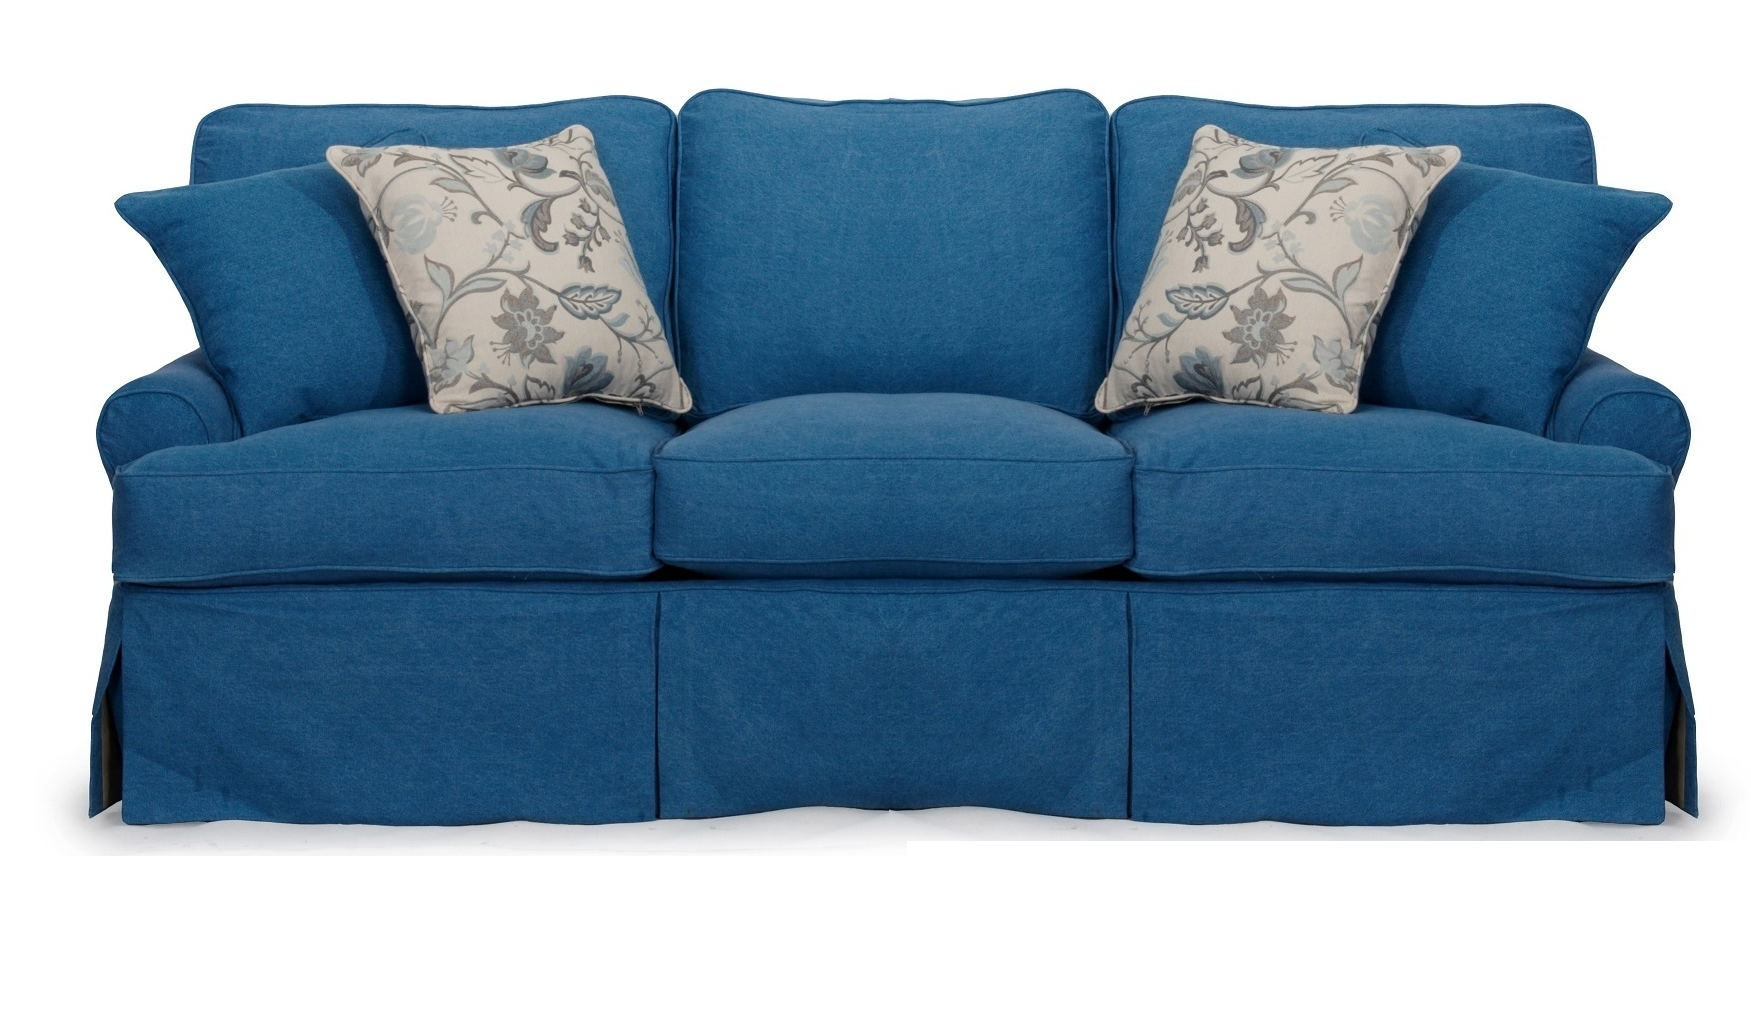 Well Known Sofa: Best Ashley Furniture Blue Sofa Couch Furniture, Ashley Sofa Inside Blue Sofa Chairs (View 5 of 20)